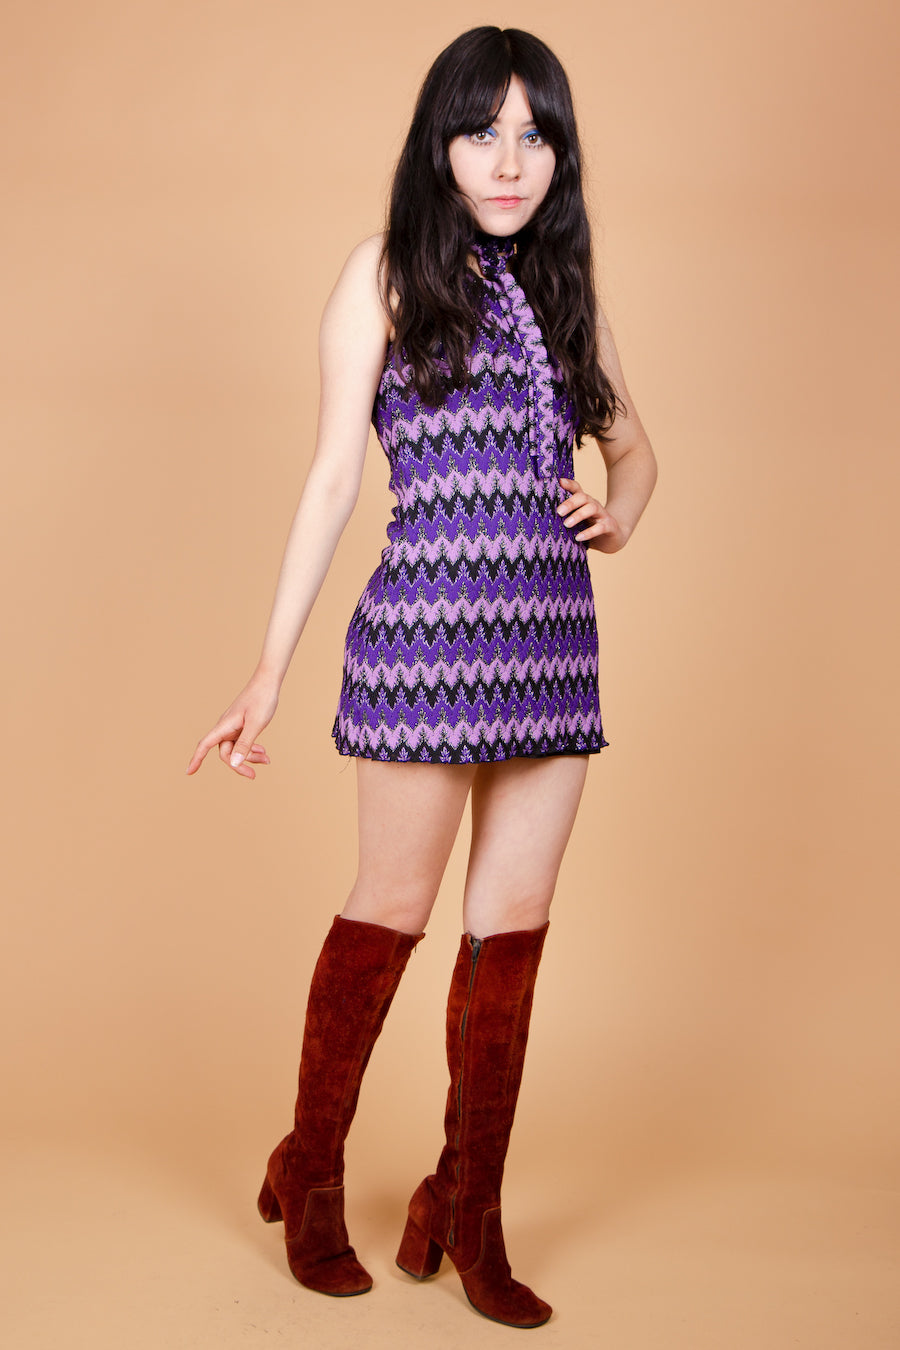 Vintage 1970's Bebe Buell Mini-Dress